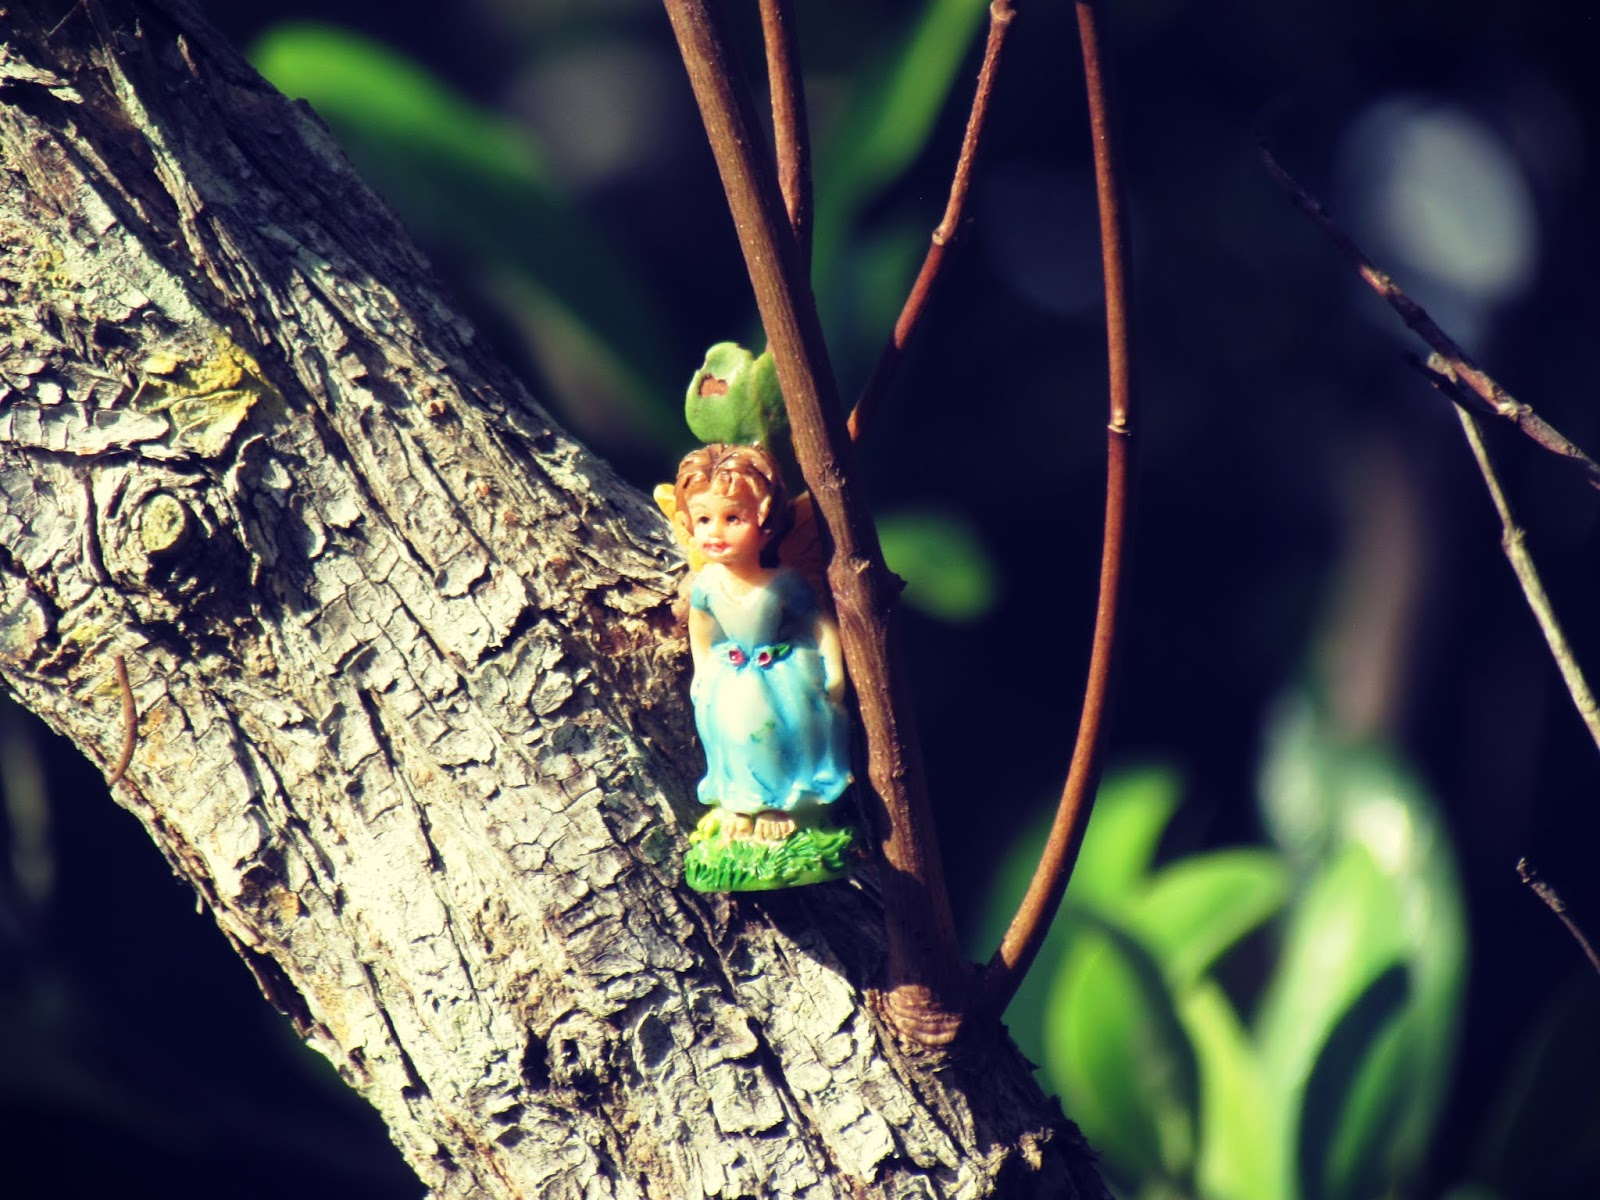 A fairy girl up in the trees in the forest of Hammock Park Butterfly Garden in Dunedin, Florida